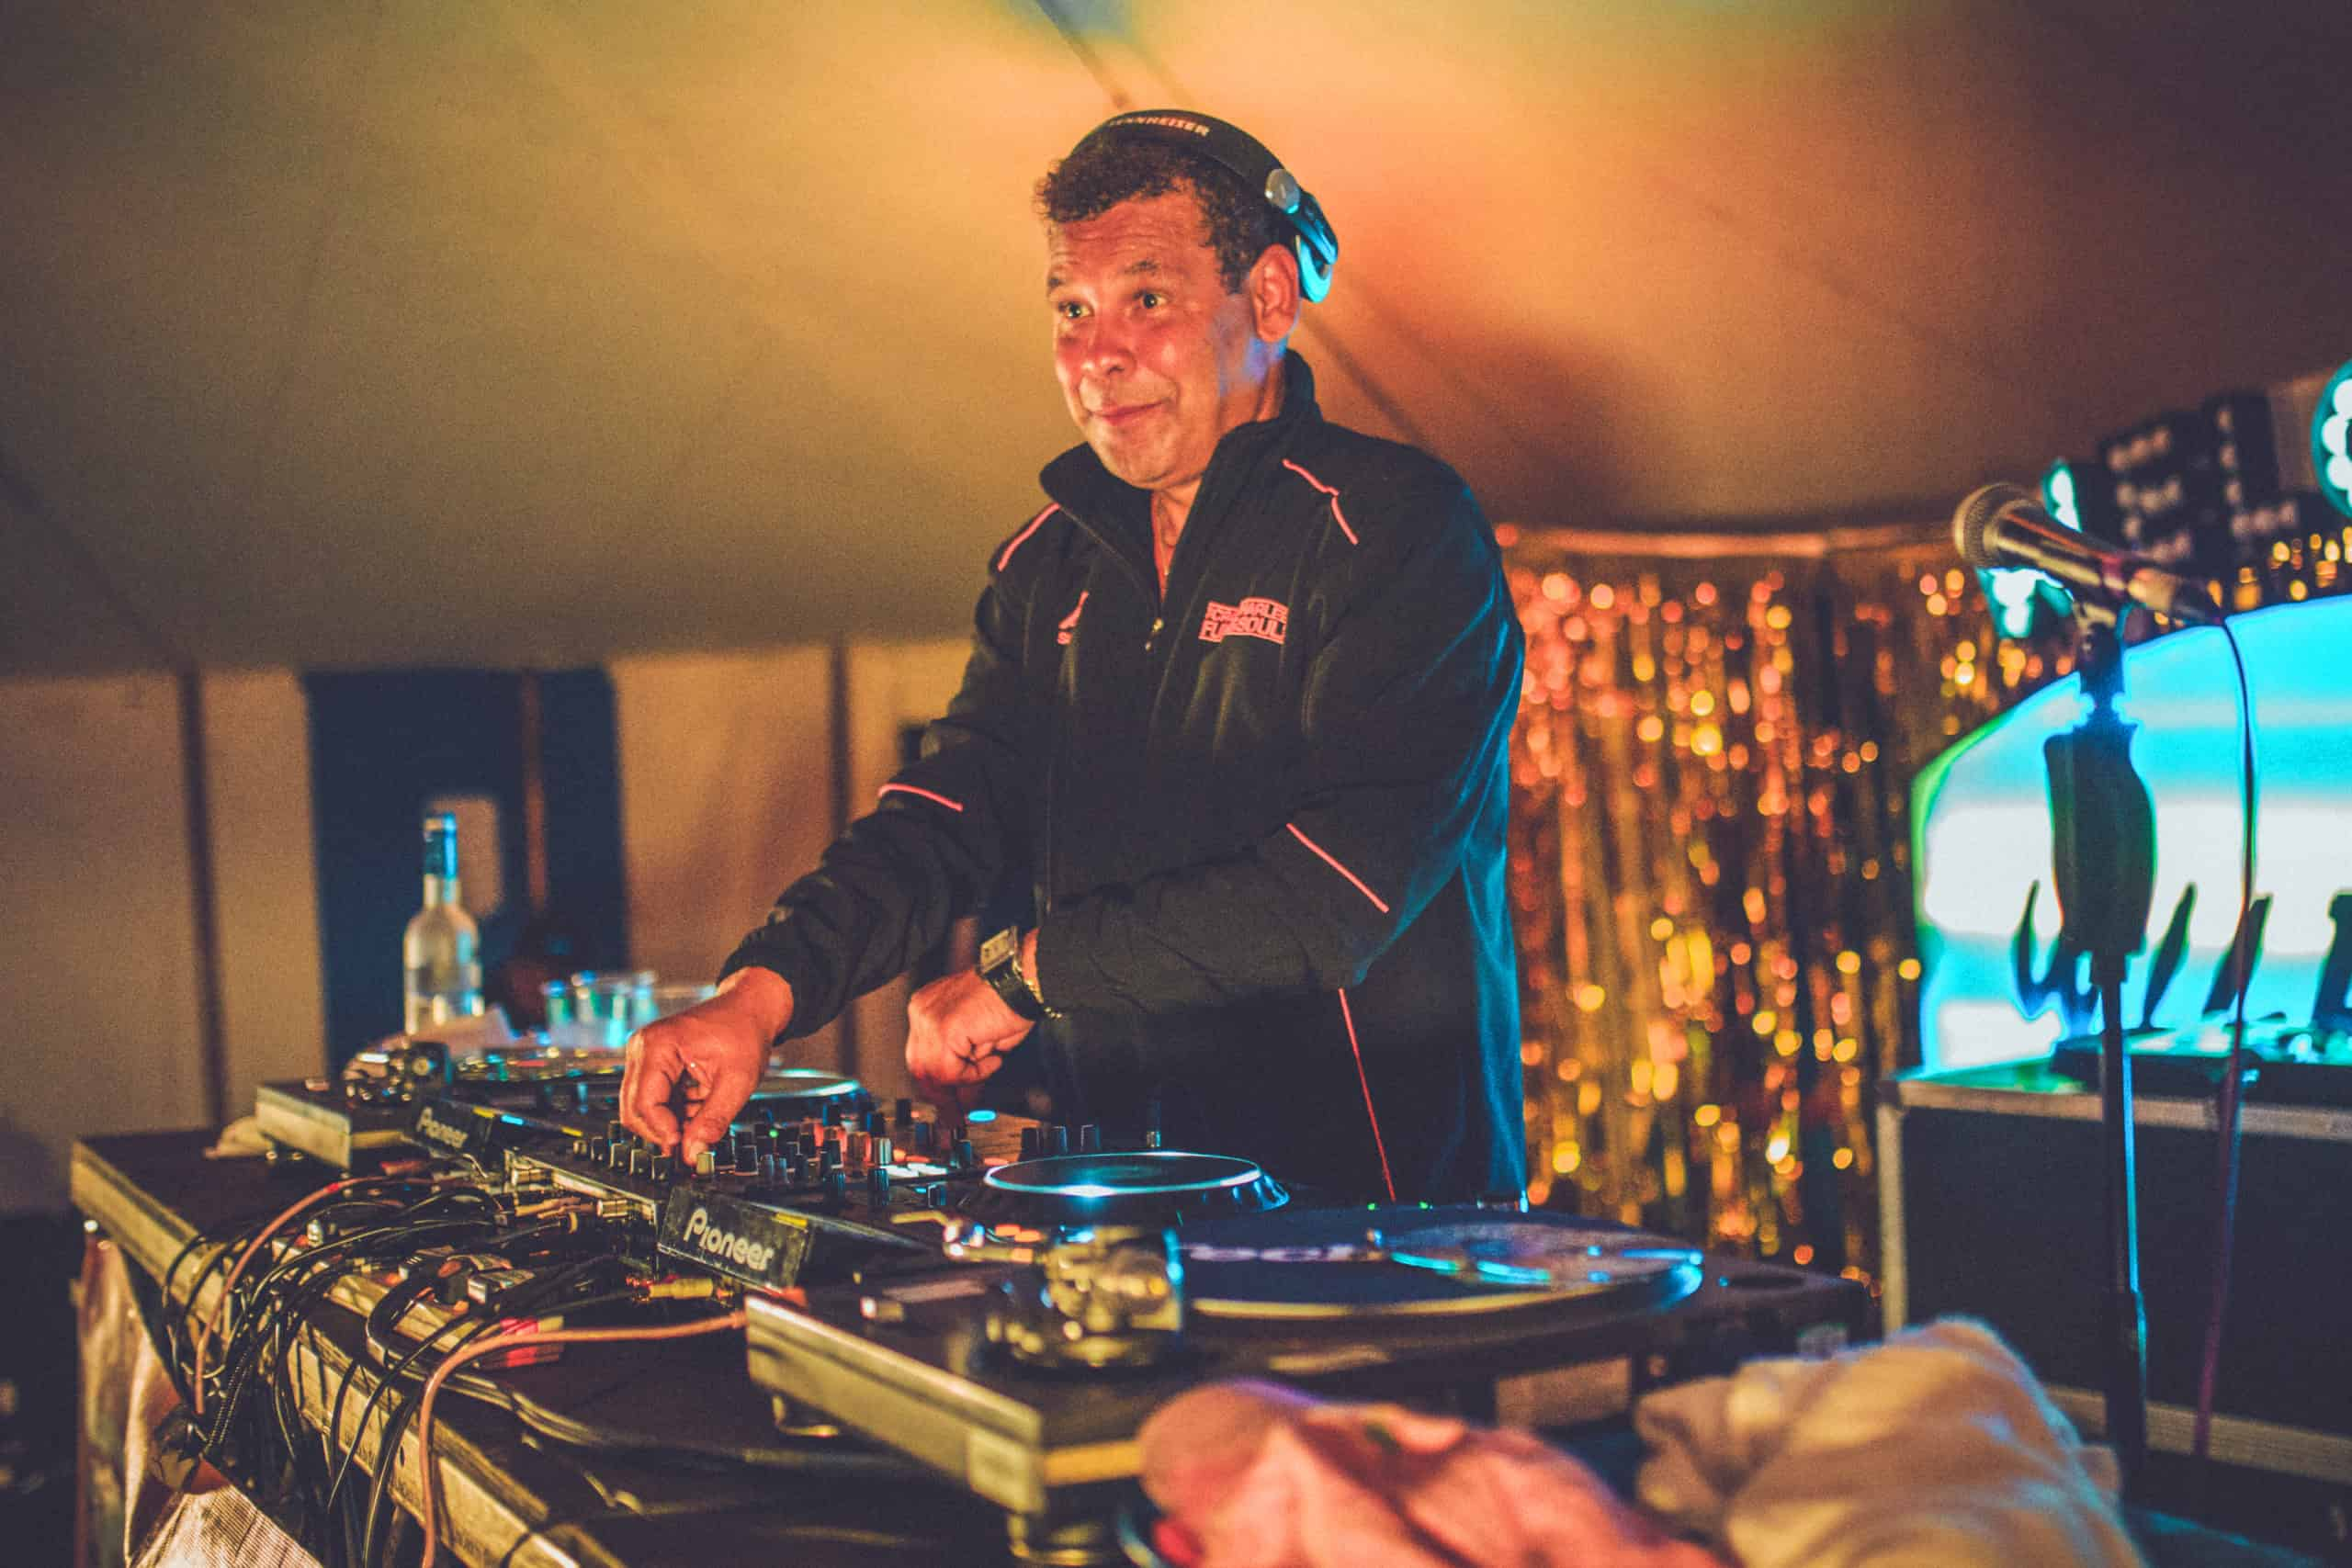 Craig Charles on the decks at Camp Wildfire. A summer weekend break in a forest near London and Kent. An outdoor woodland retreat featuring adventure activities, live music, DJs, parties and camping. Half summer adventure activity camp, half music festival, for adults only.